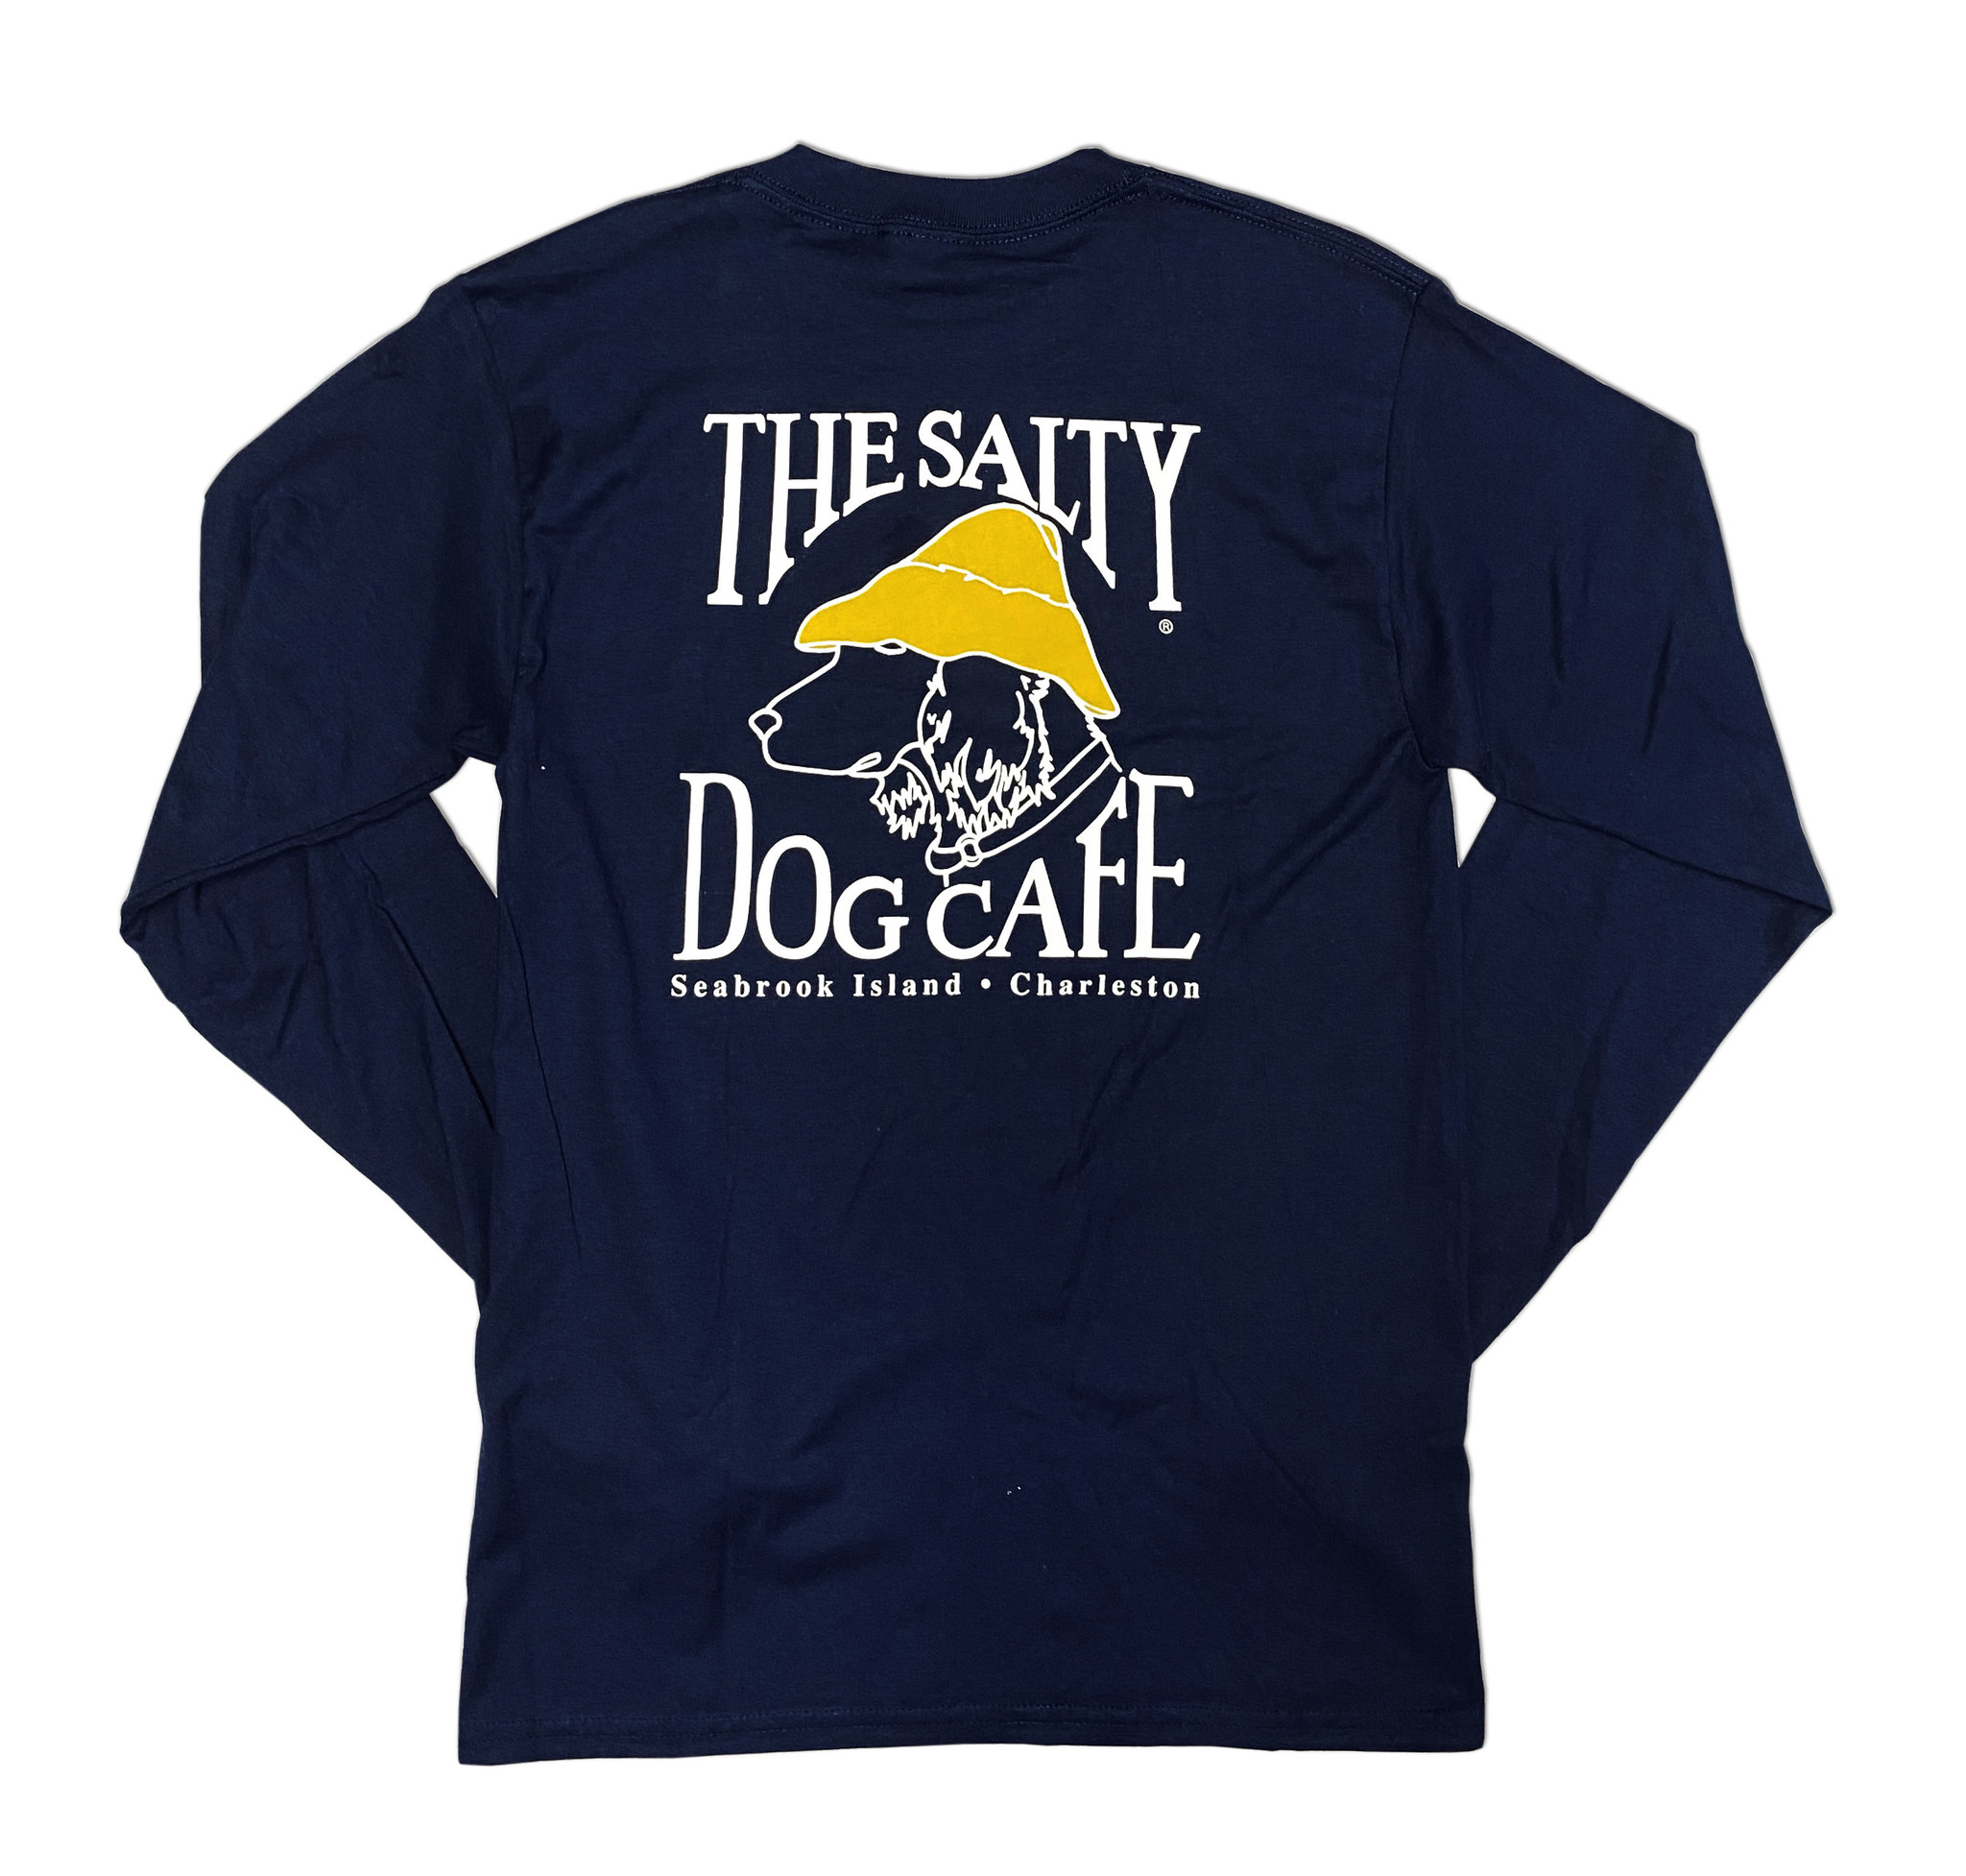 T-Shirt Bohicket Hanes Beefy Long Sleeve in Navy